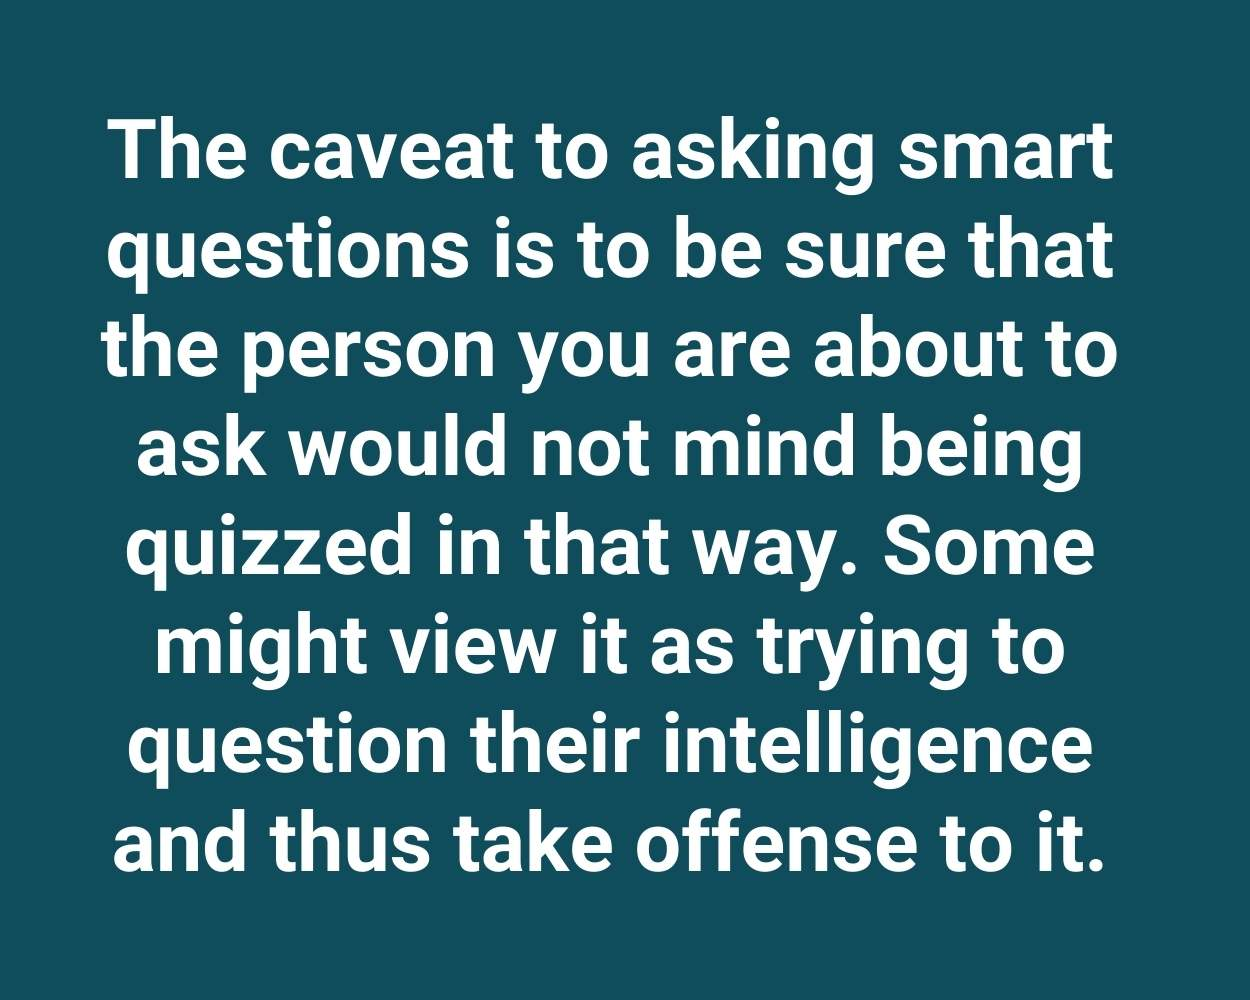 The caveat to asking smart questions is to be sure that the person you are about to ask would not mind being quizzed in that way. Some might view it as trying to question their intelligence and thus take offense to it.